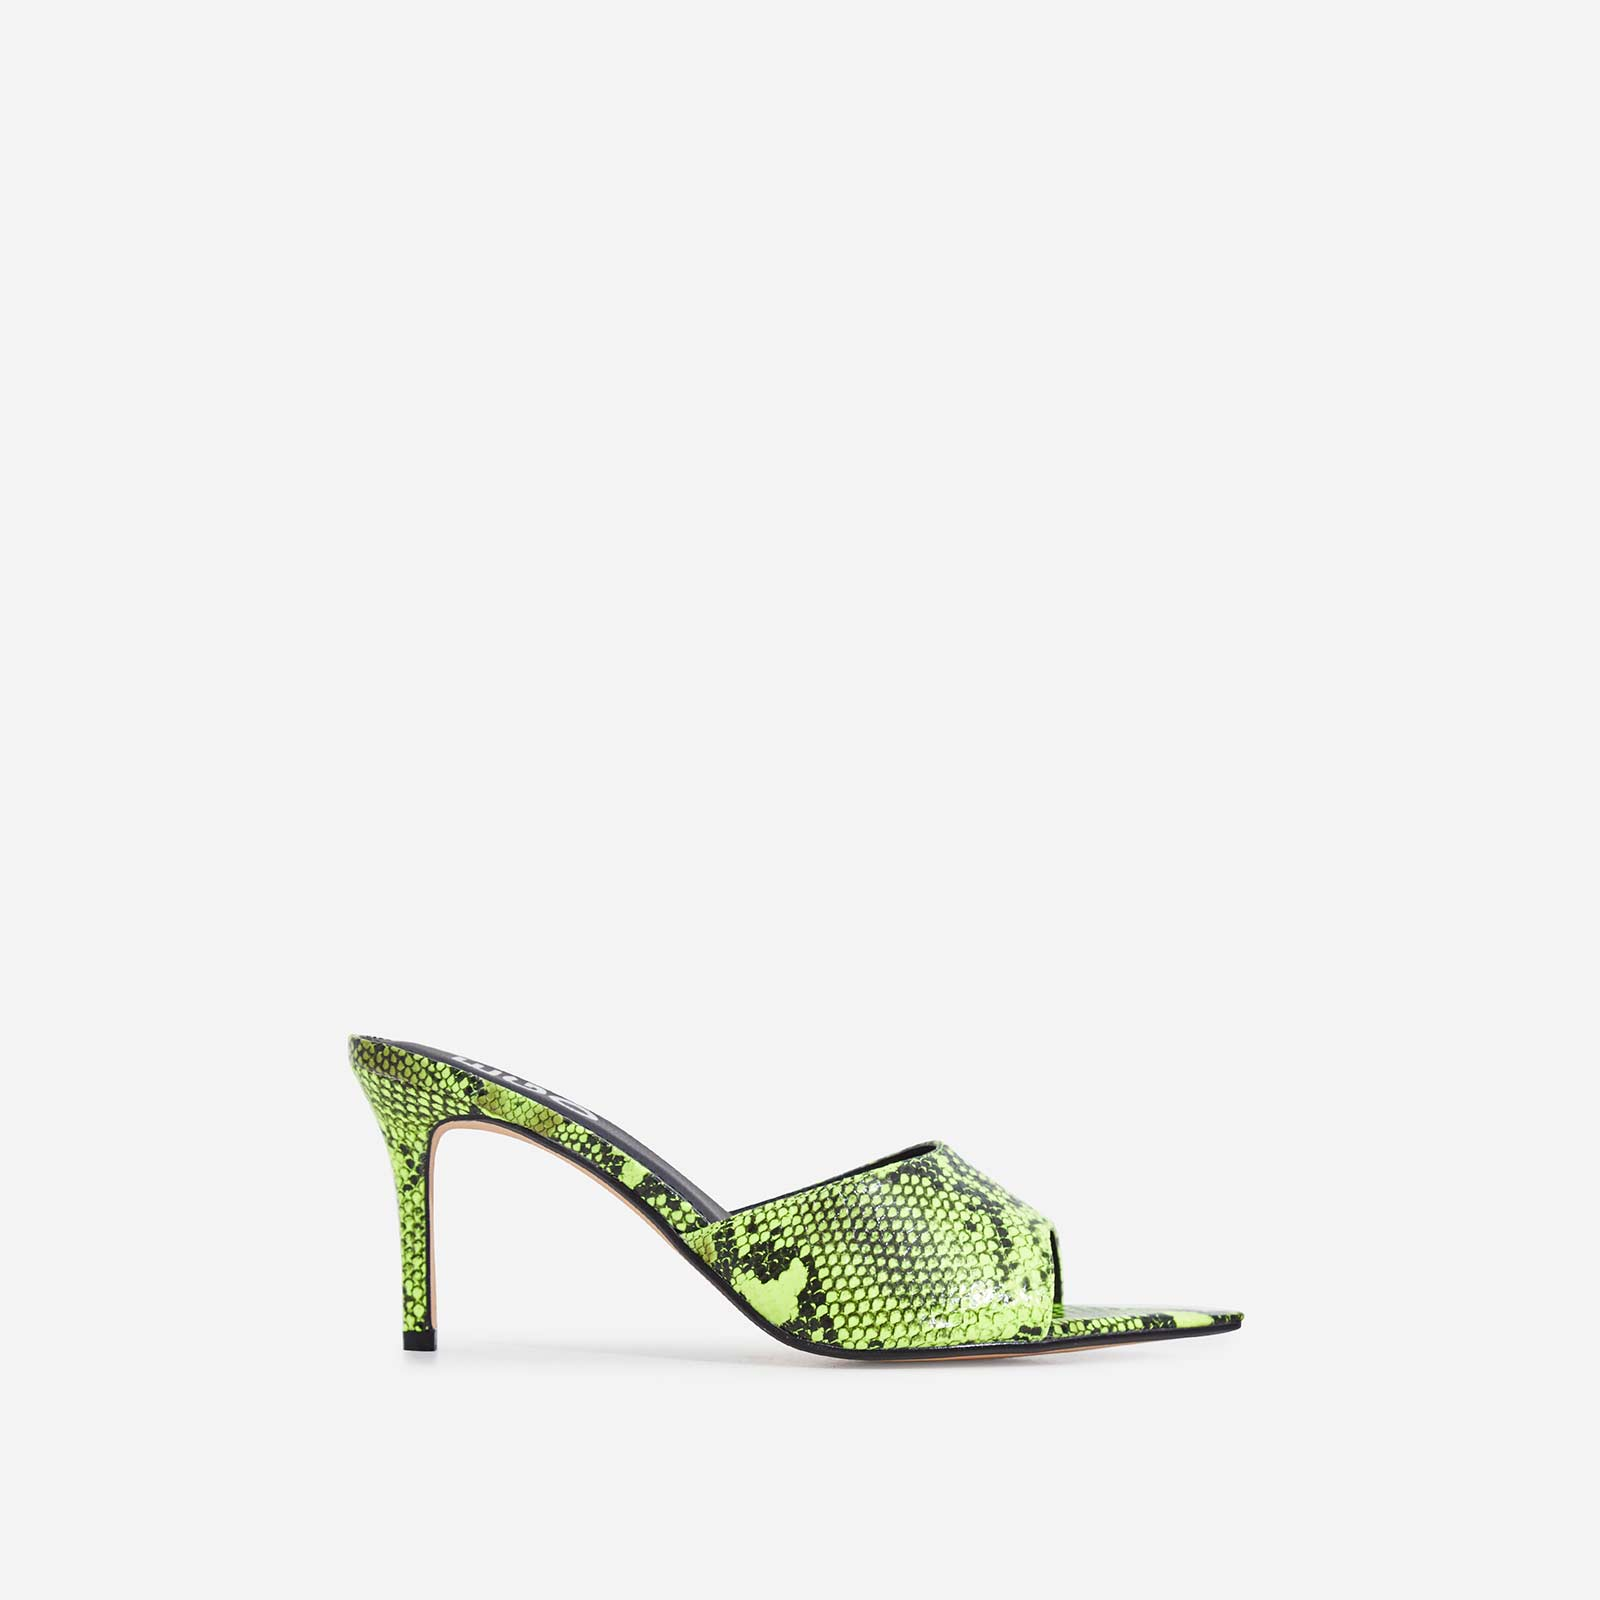 Sansa Pointed Peep Toe Heel Mule In Neon Yellow Snake Print Faux Leather